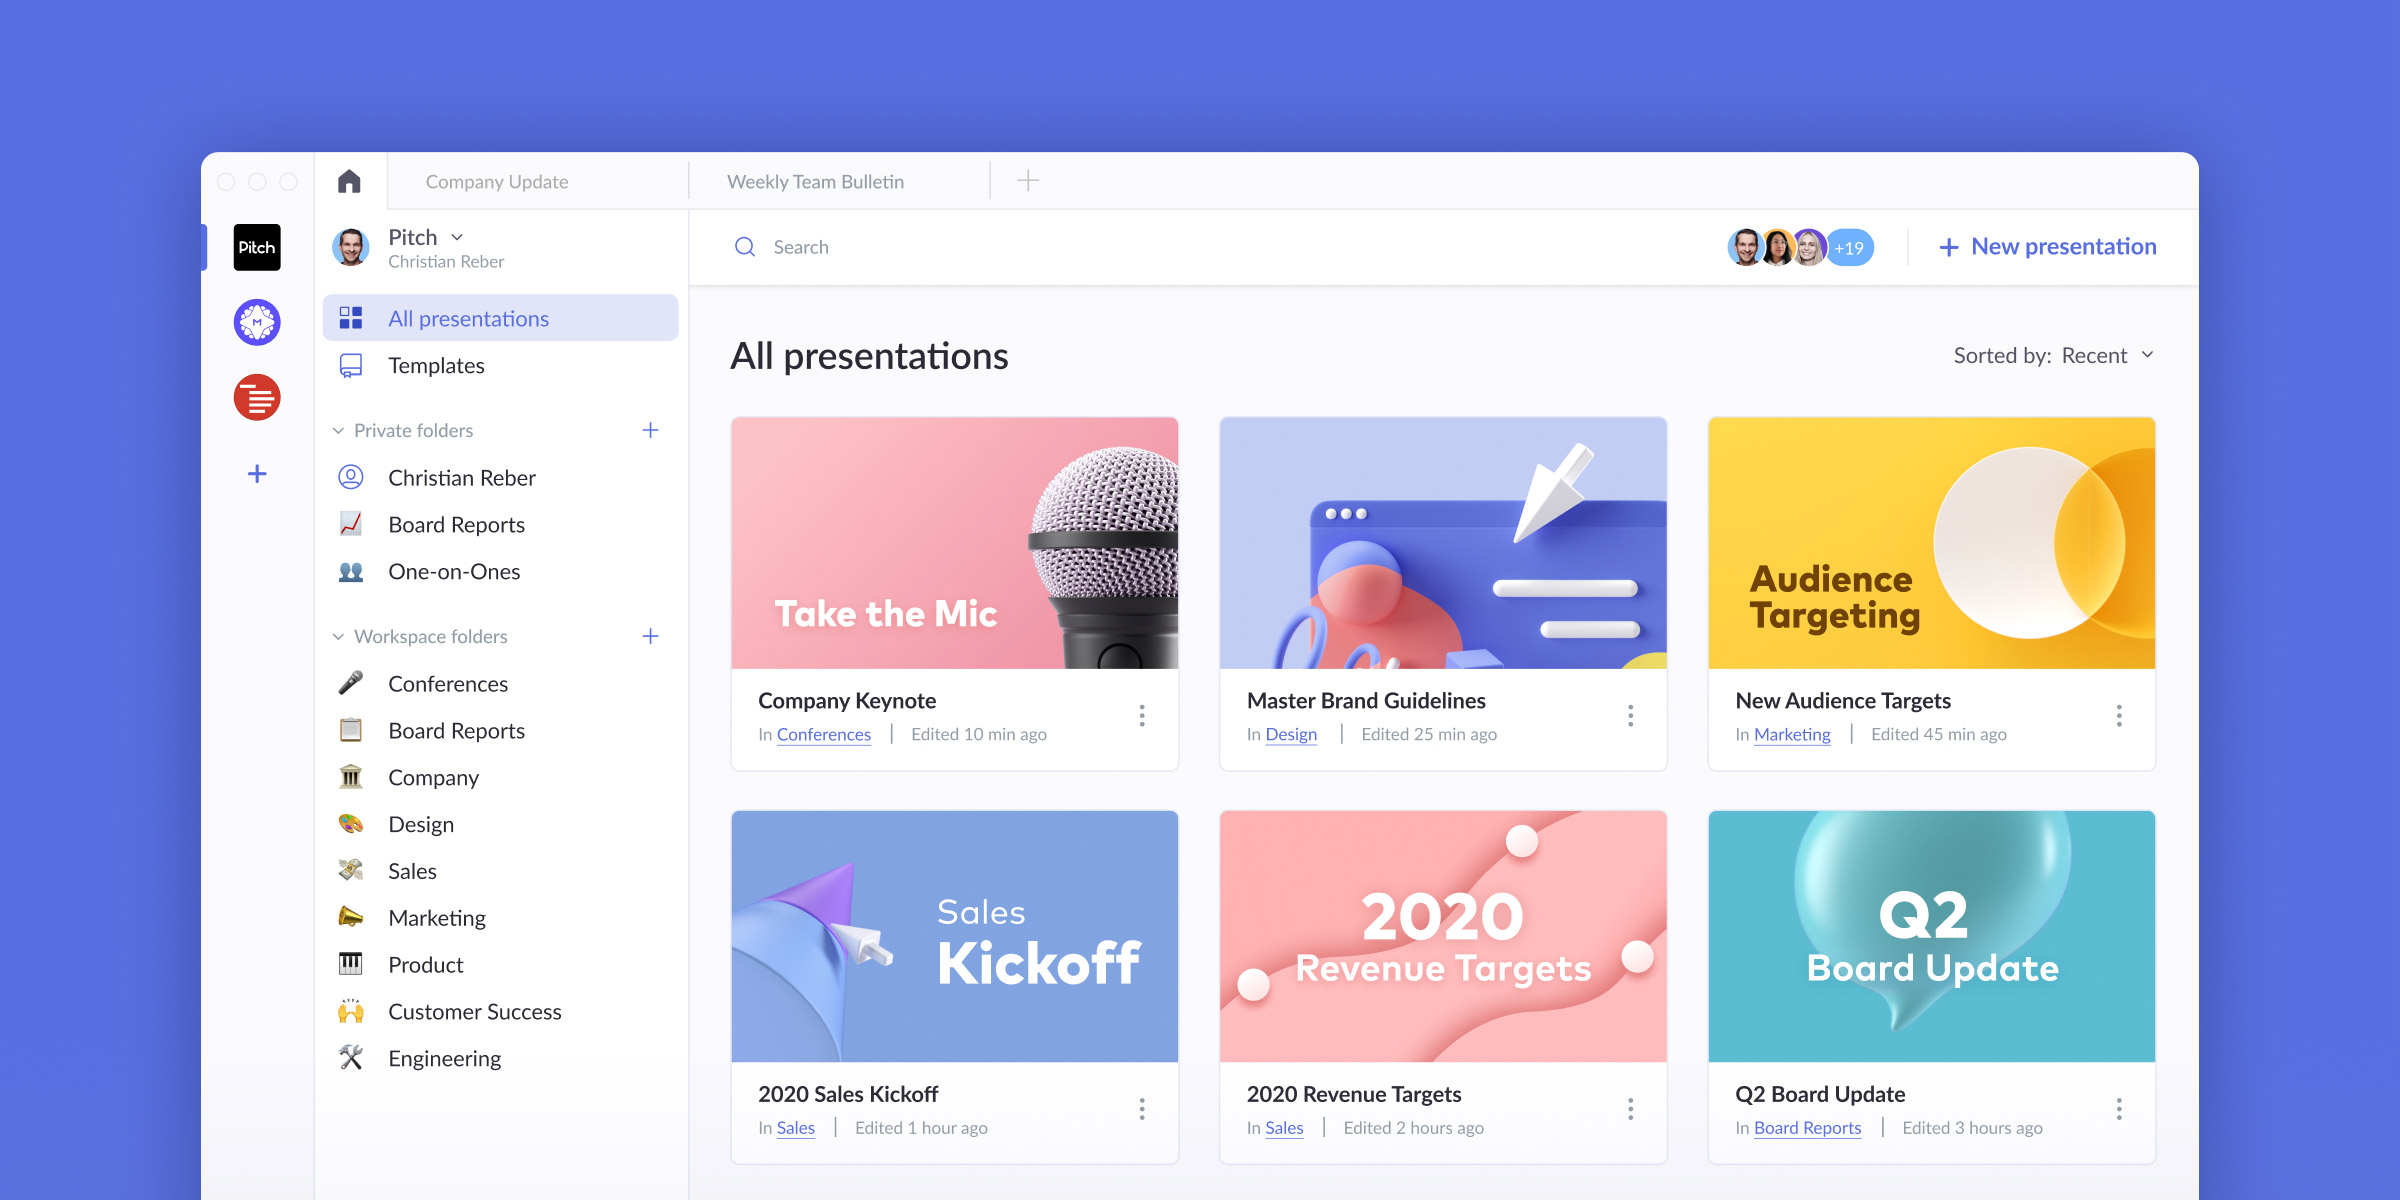 Pitch helps teams create, collaborate on, and distribute better presentations faster and more effectively than ever before.